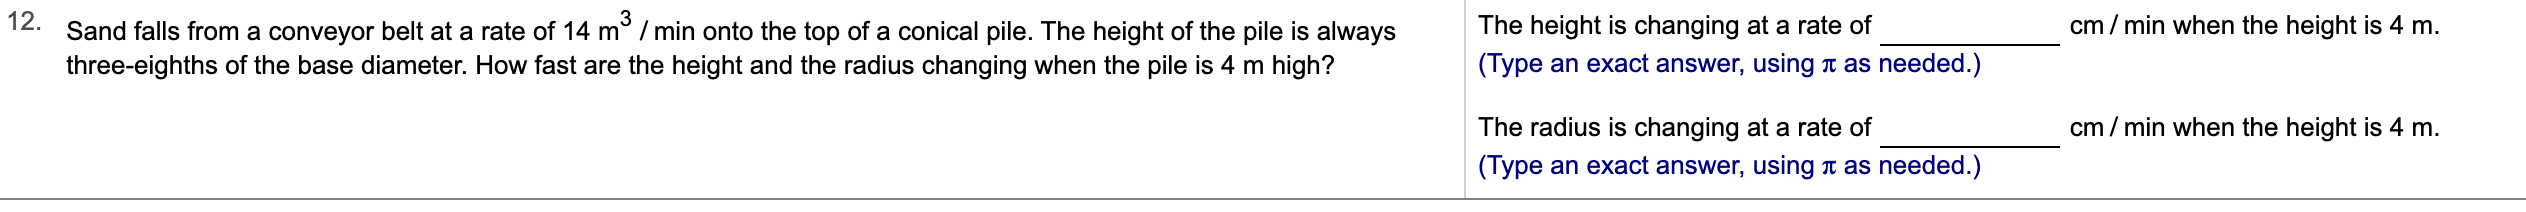 12. Sand falls from a conveyor belt at a rate of 14 m2 /min onto the top of a conical pile. The height of the pile is always cm min when the height is 4 m The height is changing at a rate of (Type an exact answer, using t as needed.) three-eighths of the base diameter. How fast are the height and the radius changing when the pile is 4 m high? cm/min when the height is 4 m. The radius is changing at a rate of (Type an exact answer, using as needed.)